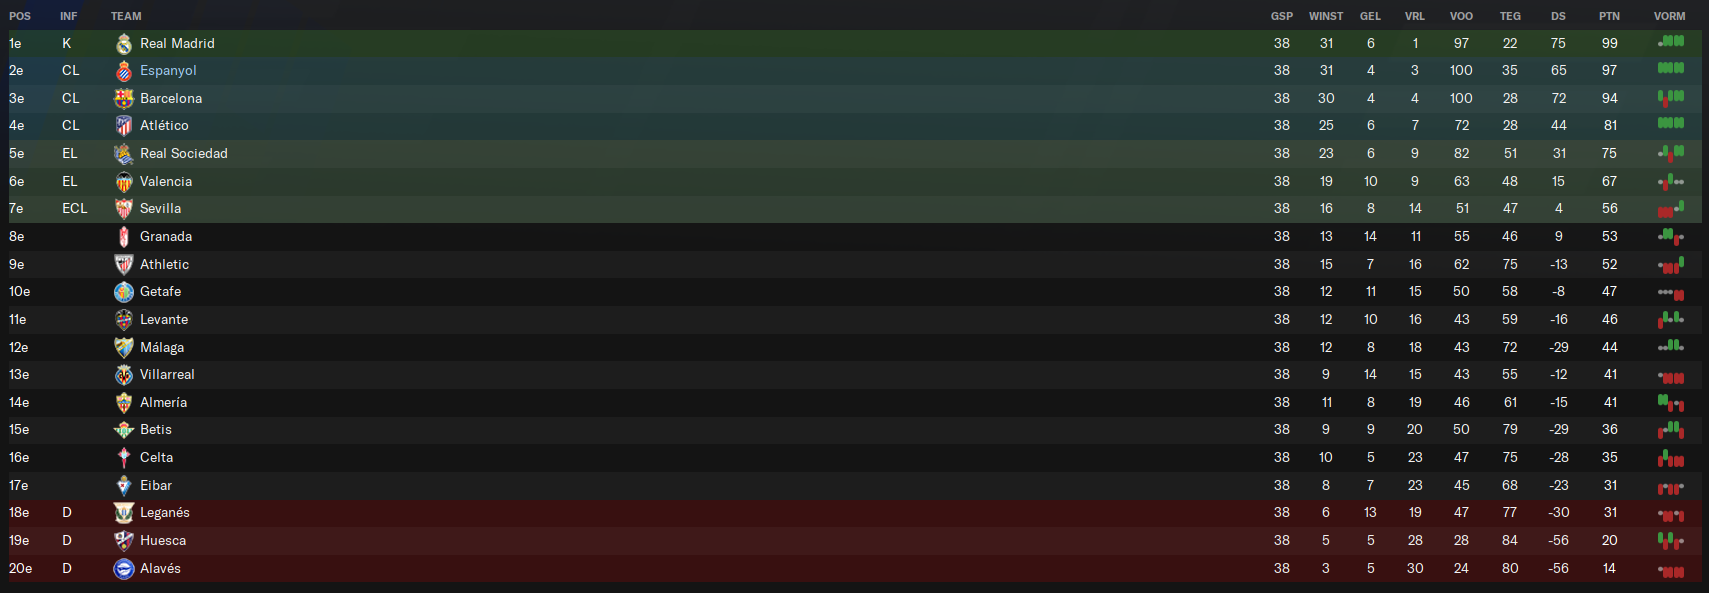 609bec3ed1b87-eindstand.png